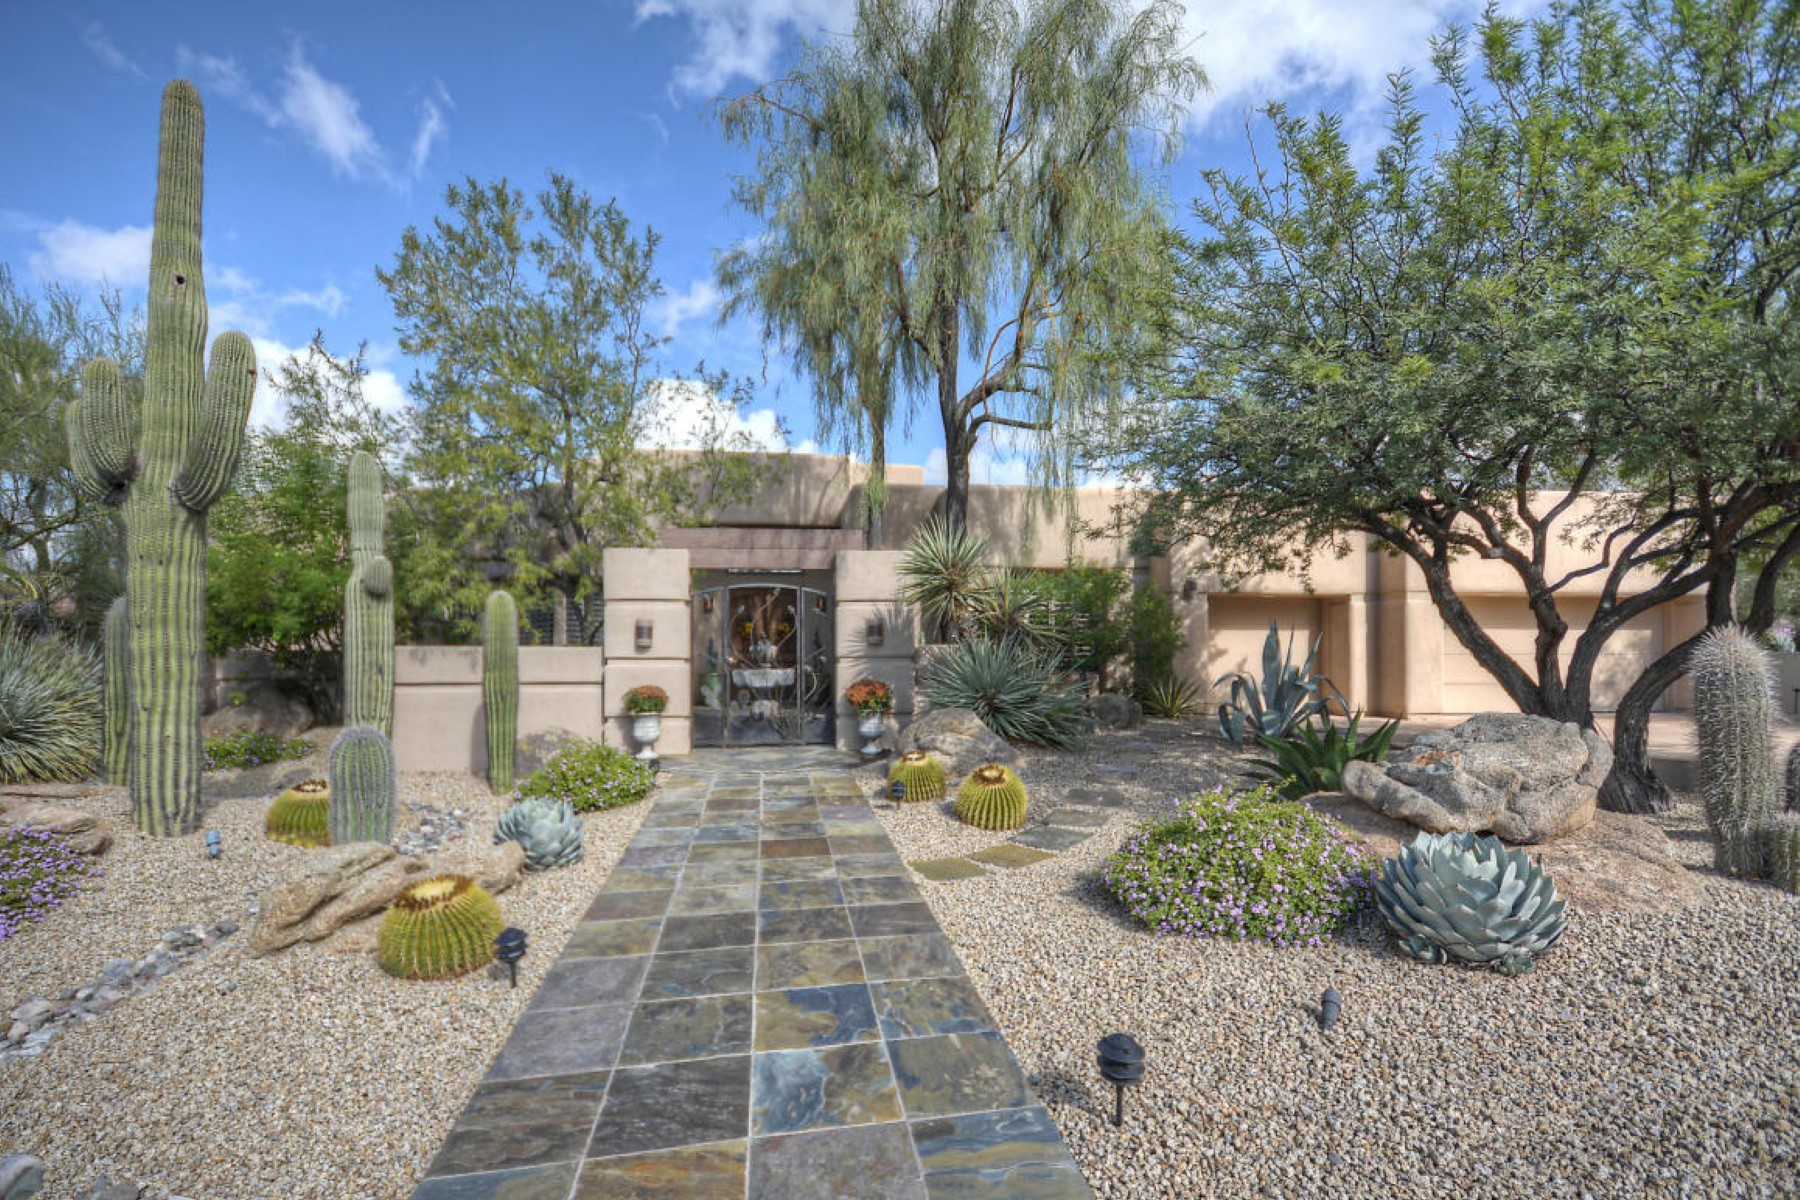 Single Family Home for Sale at Courtyard features charming custom ironwork gate and bubbling fountain 7448 E Thorntree Dr Scottsdale, Arizona 85266 United States